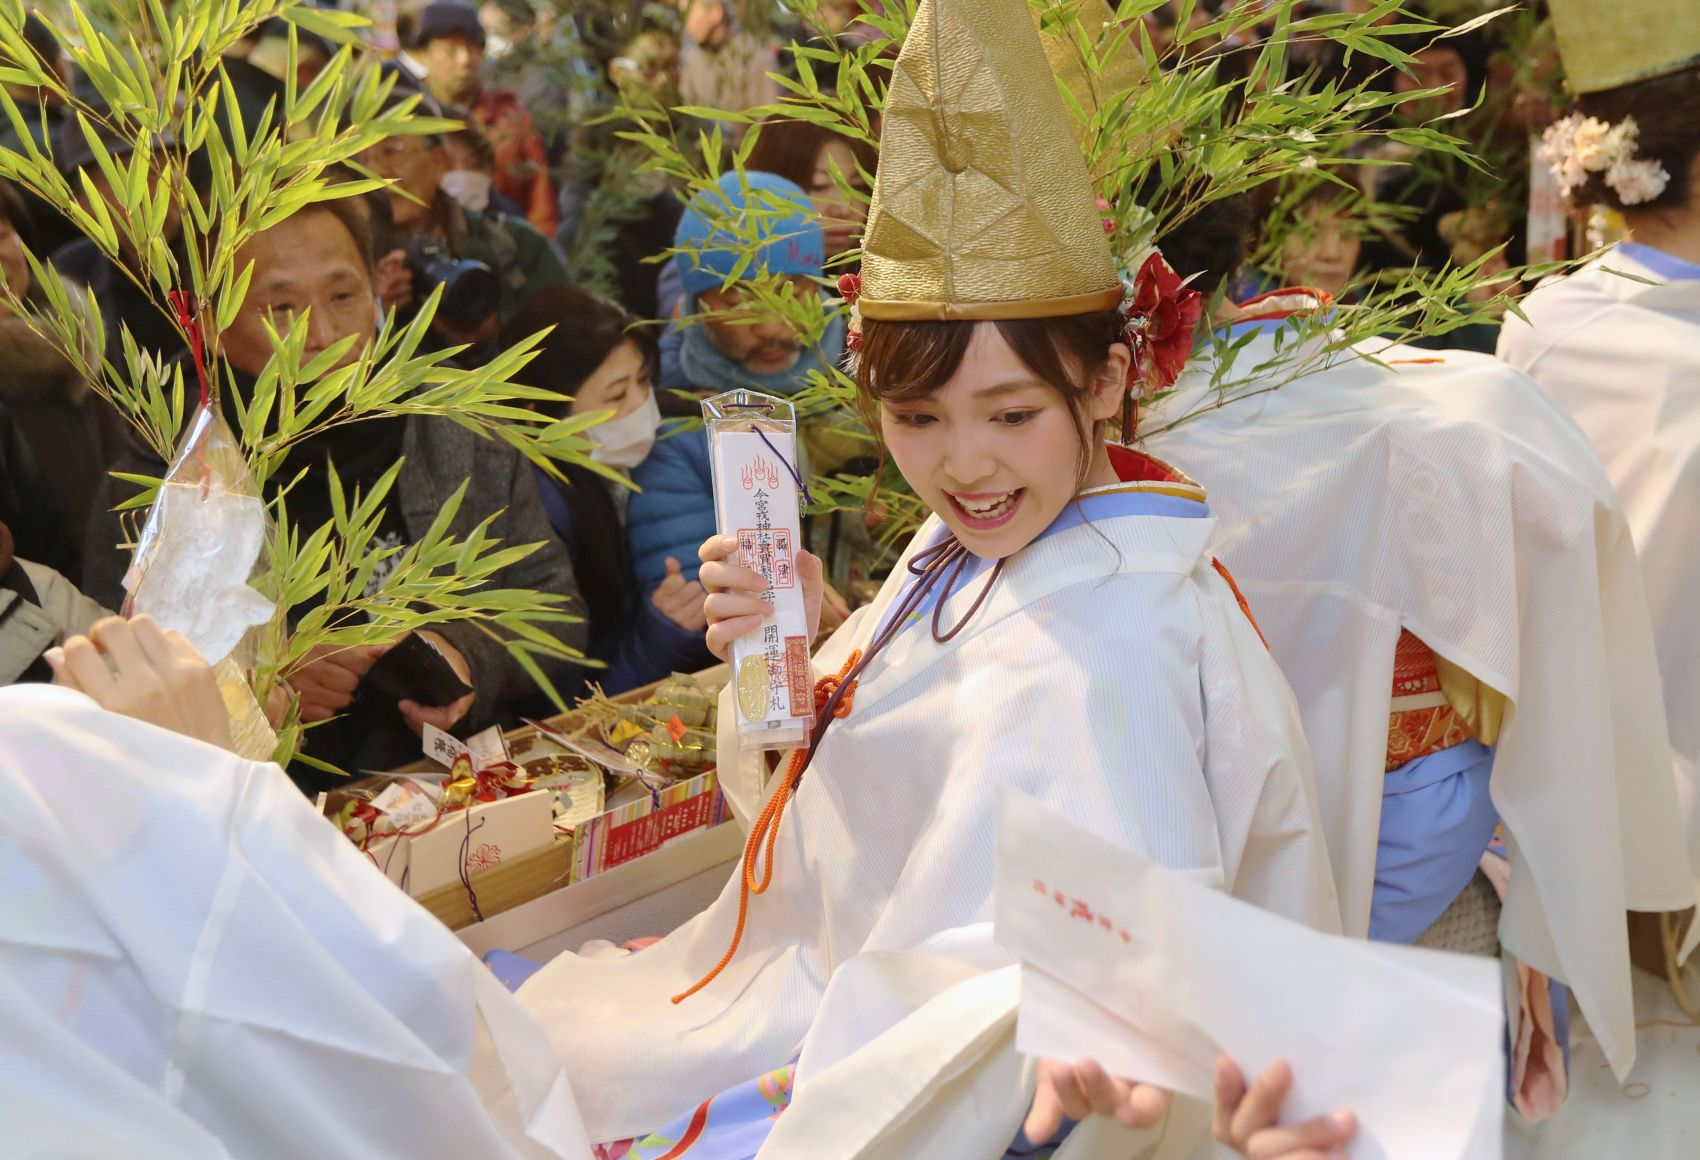 [Hidden Wonders of Japan] Pray to the God of Good Business with a Bamboo Branch!